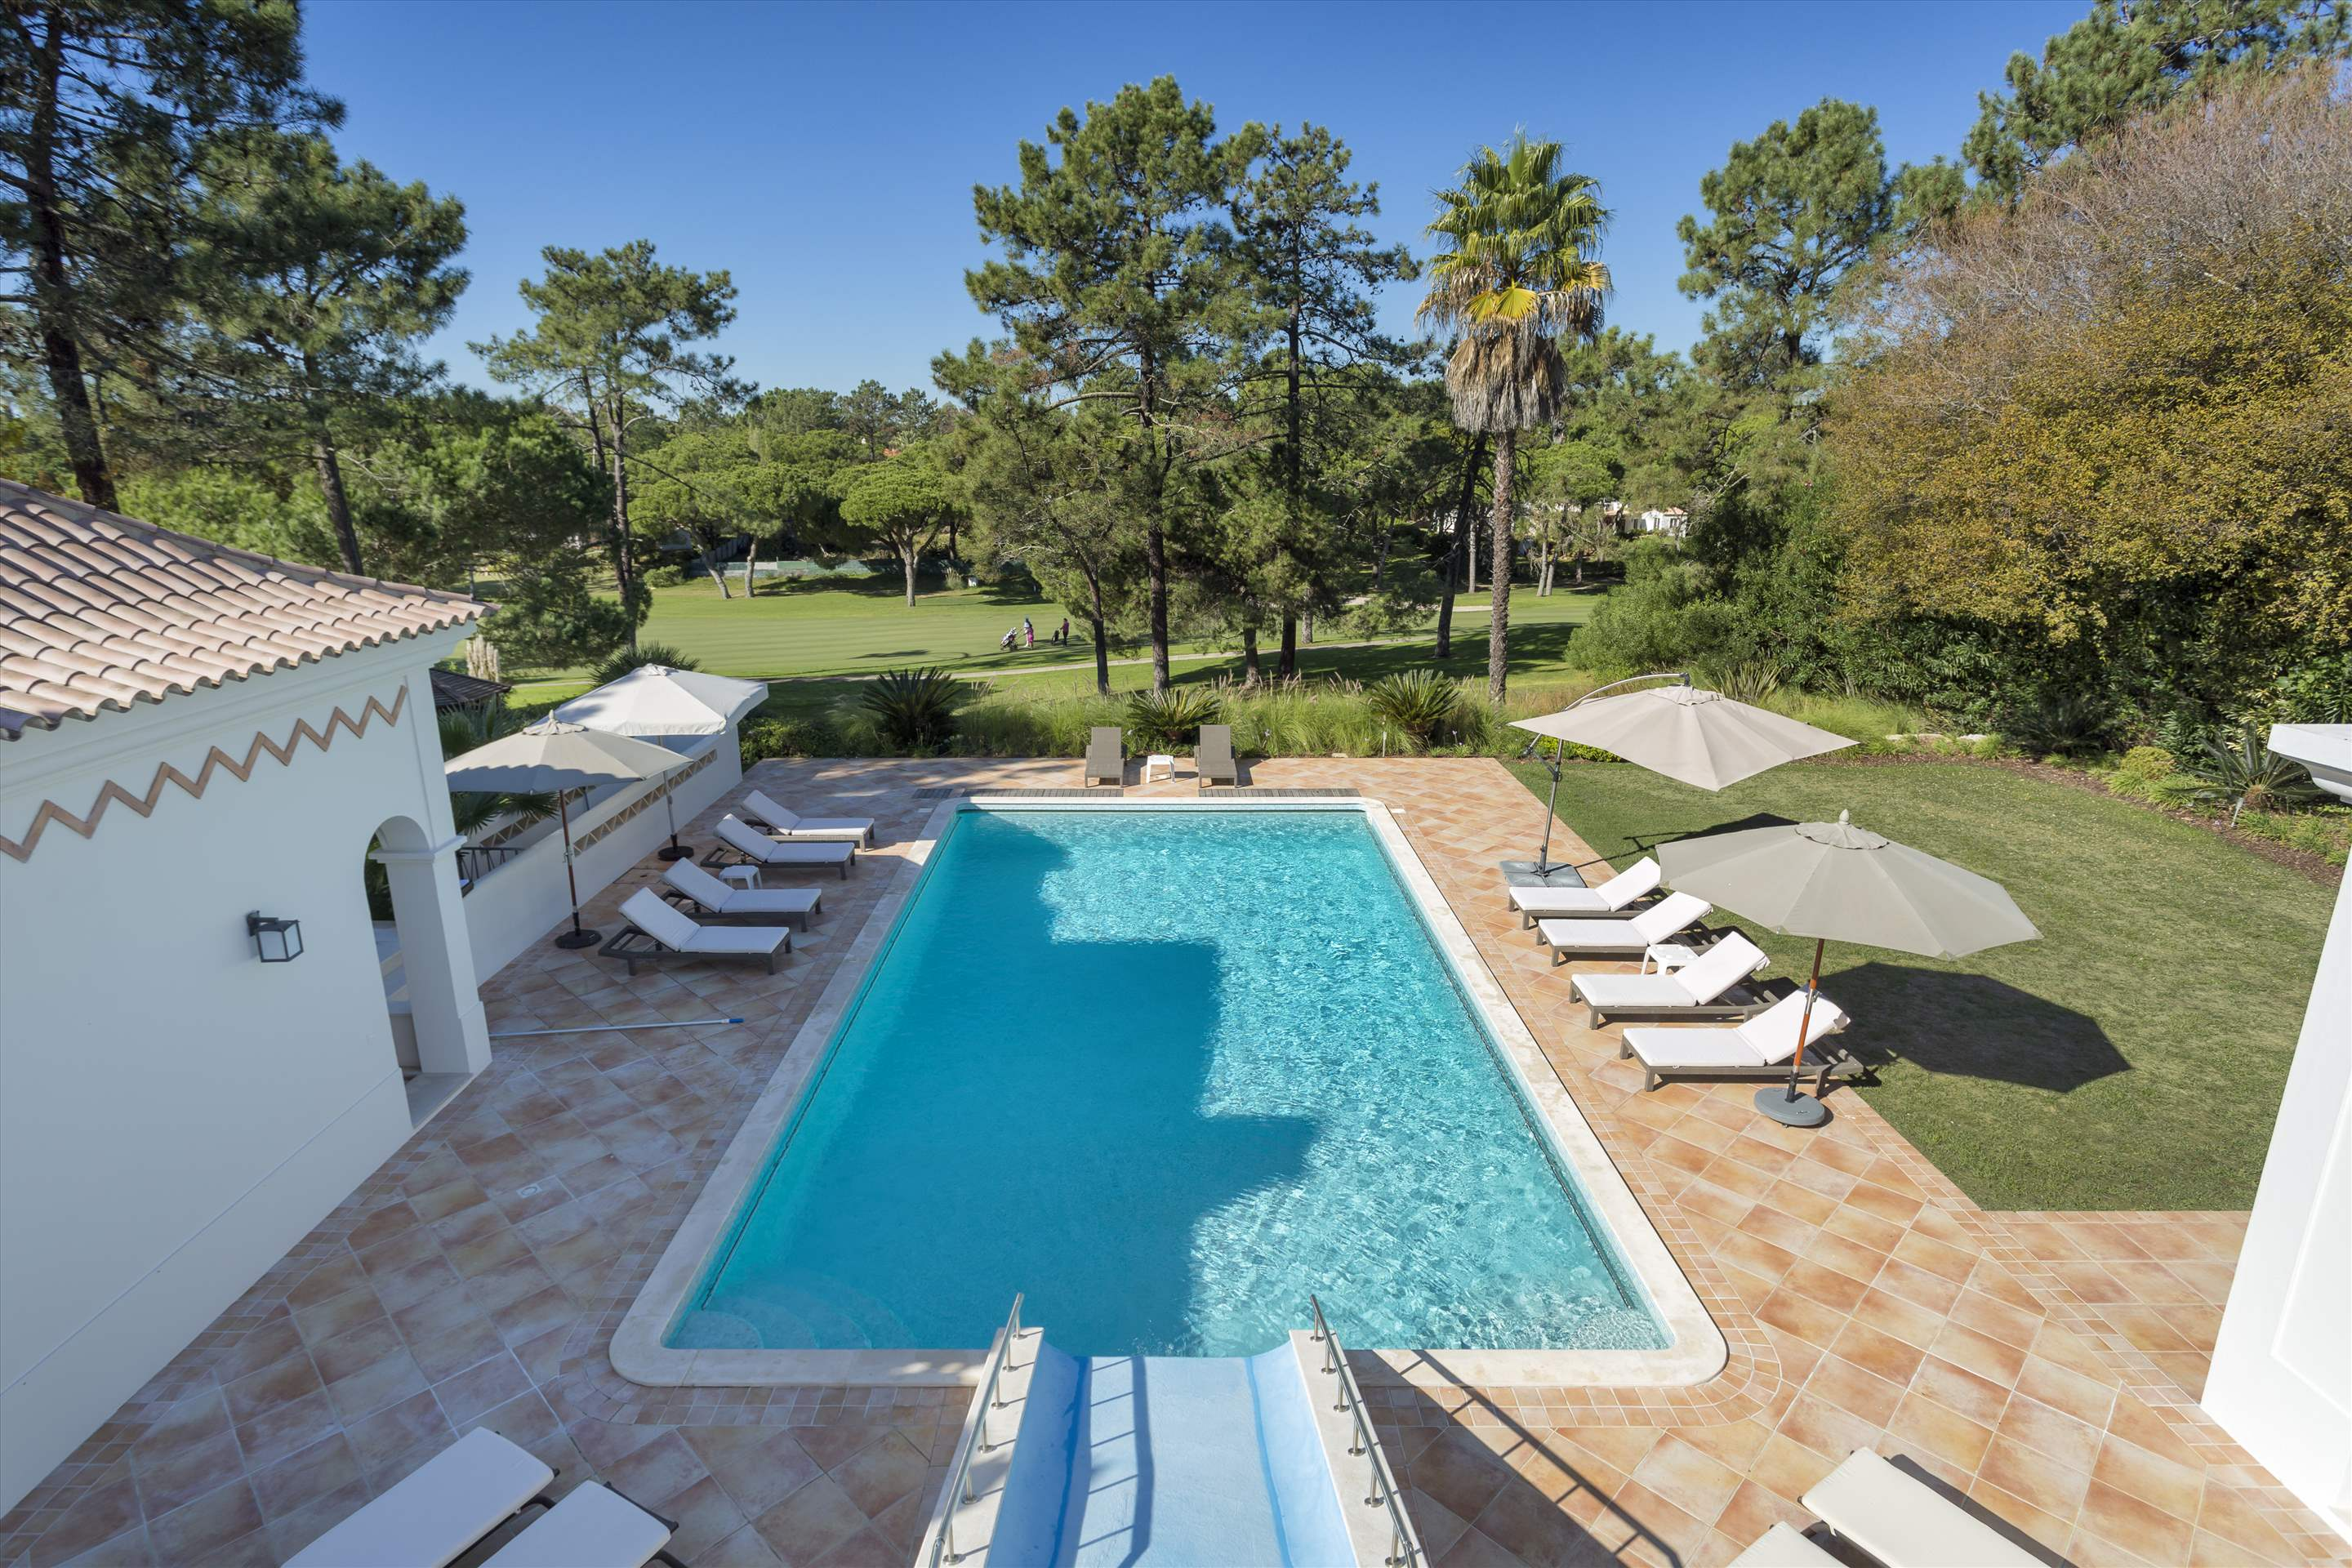 Villa Lantana 2, Main house & Annexe, 6 bedrooms, 6 bedroom villa in Quinta do Lago, Algarve Photo #28